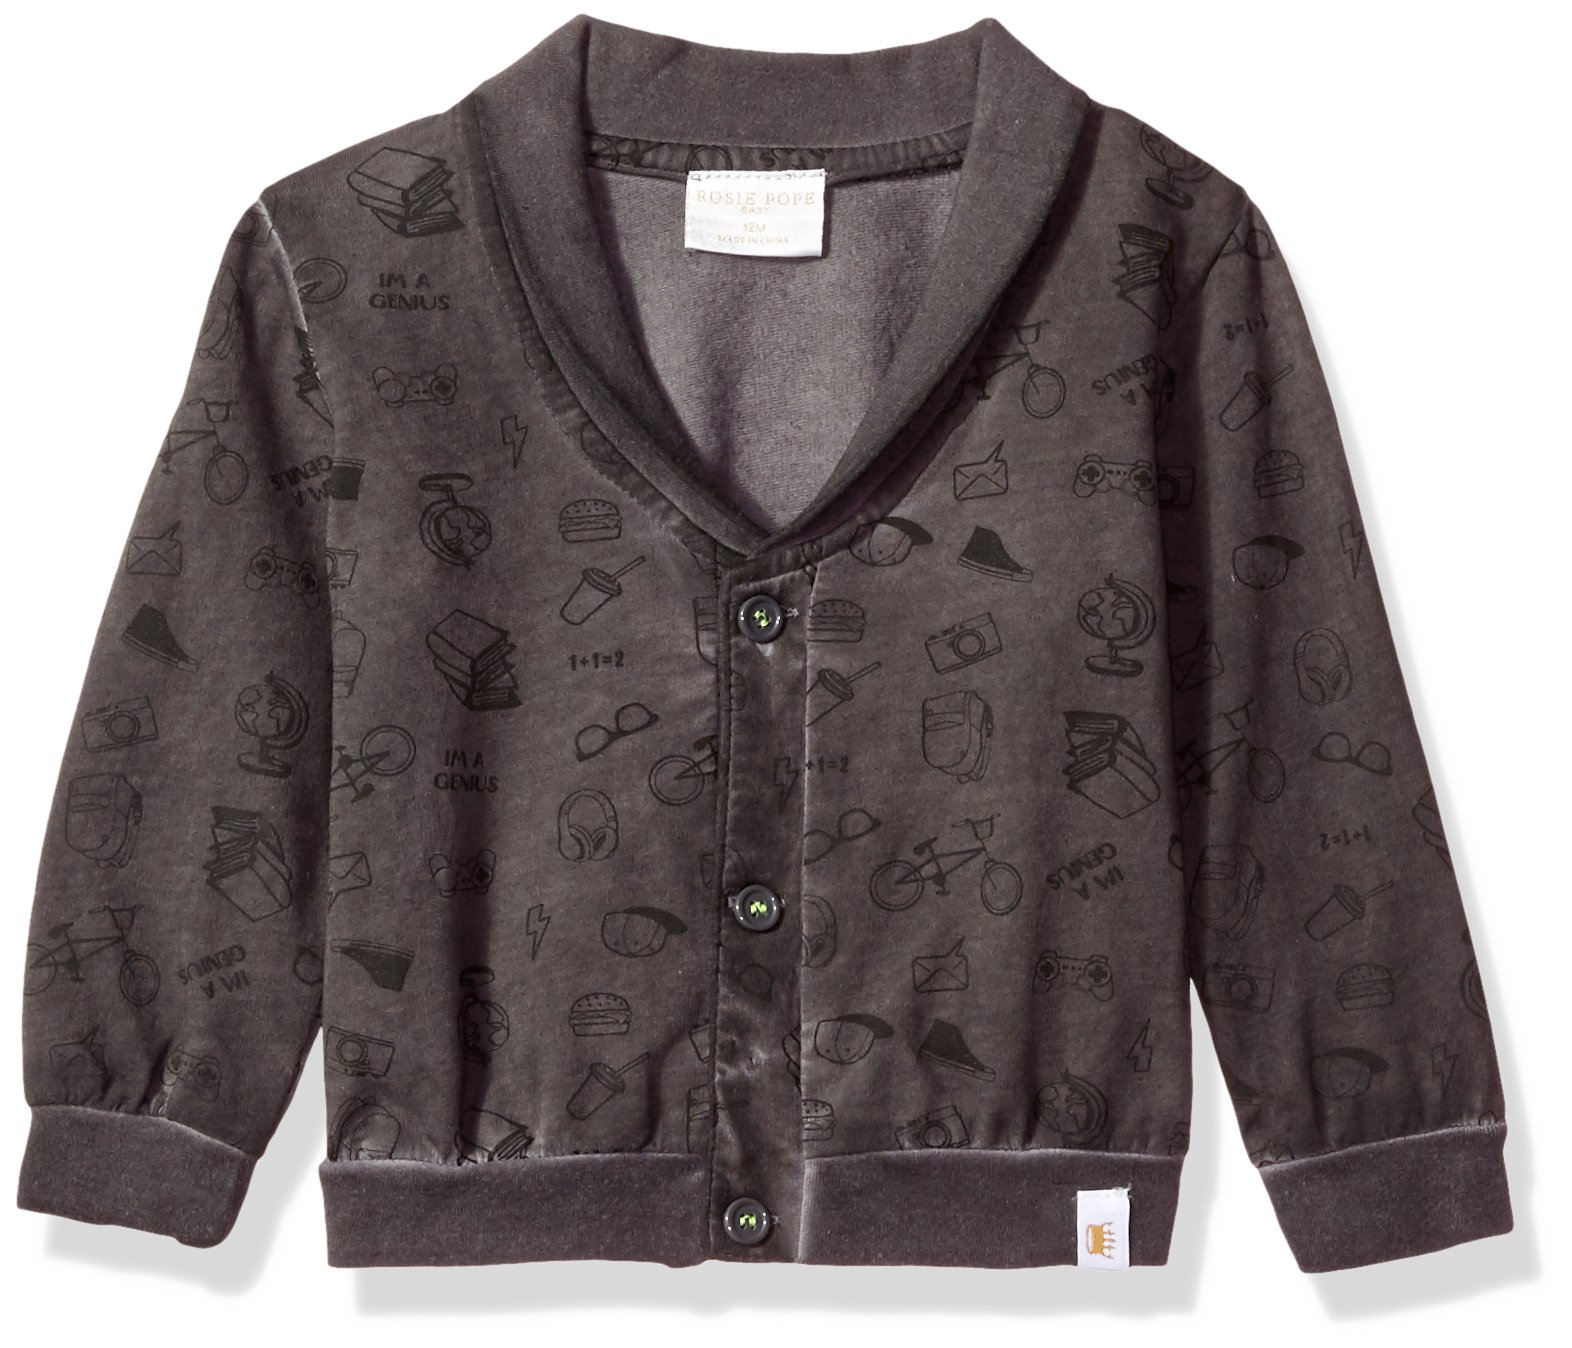 Rosie Pope Baby Boys Garment Dyed Cardigan, Black, 12M by Rosie Pope